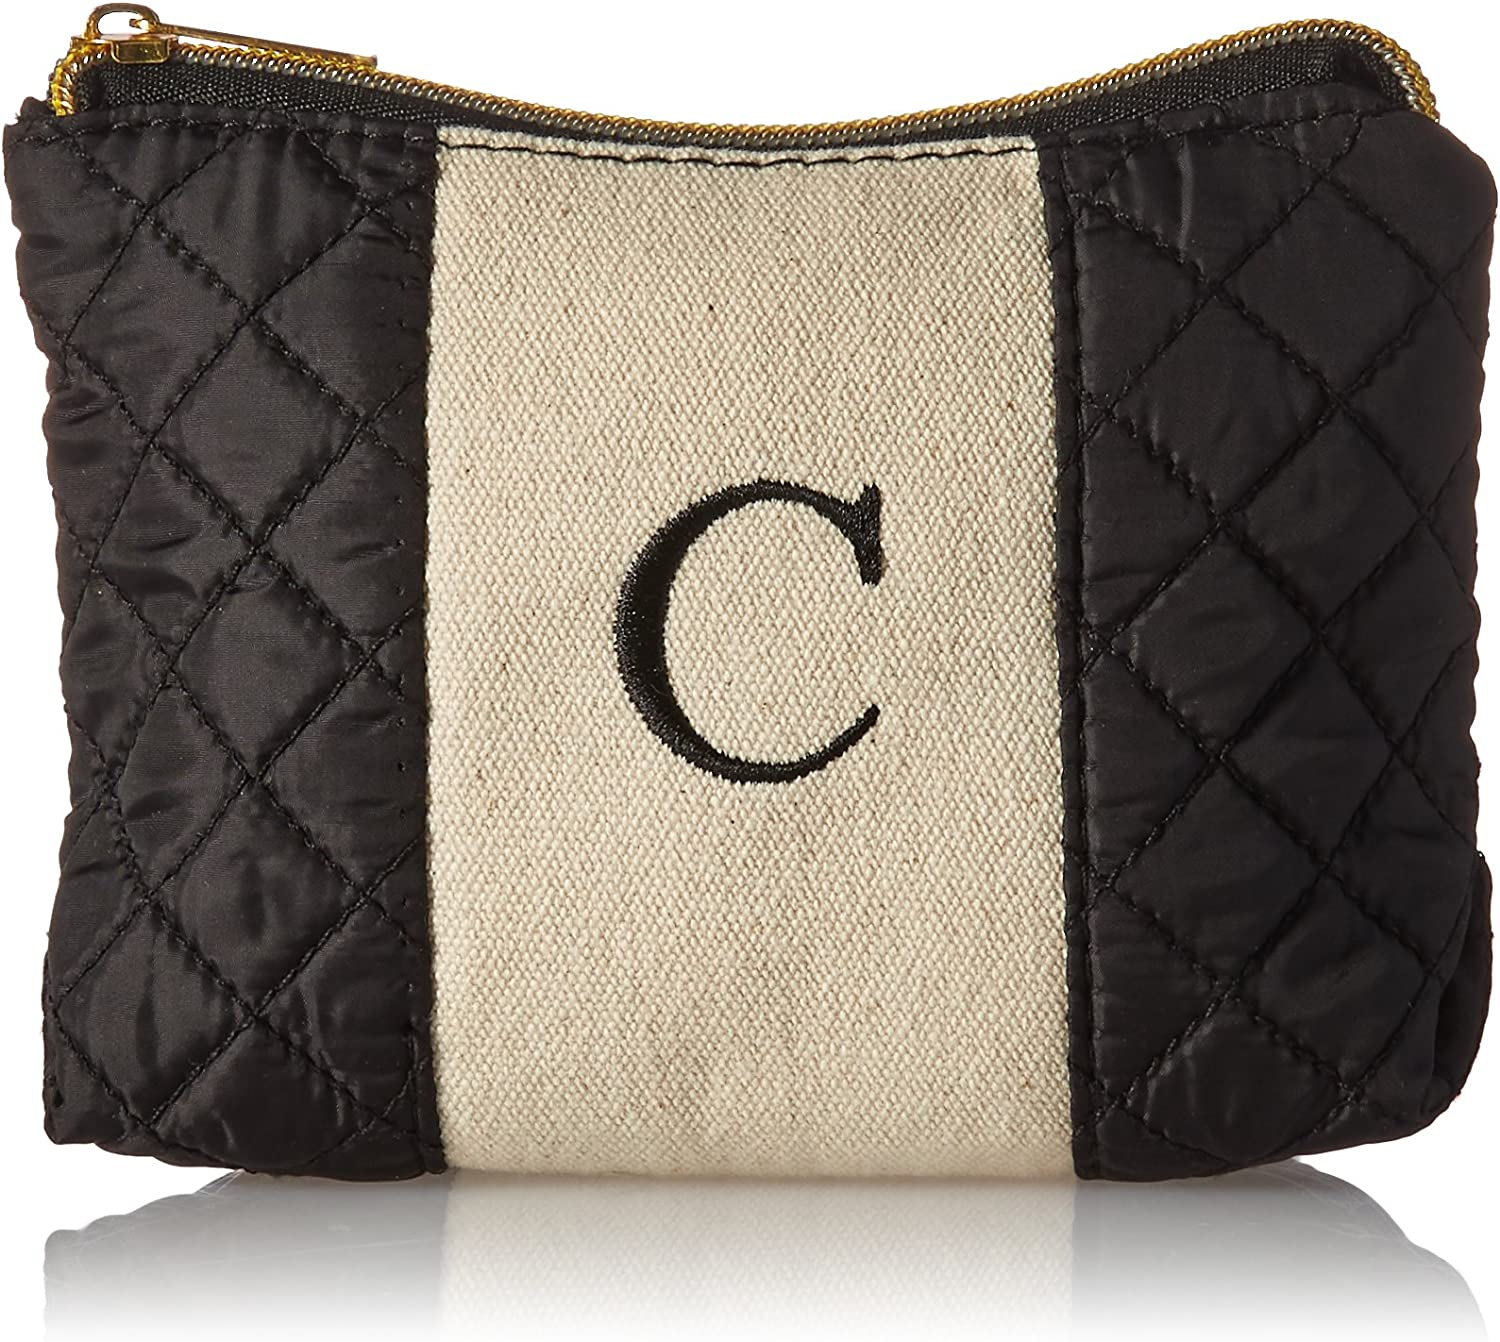 Kate Aspen 29096XC Black and White C Makeup Monogram Make up Bags,